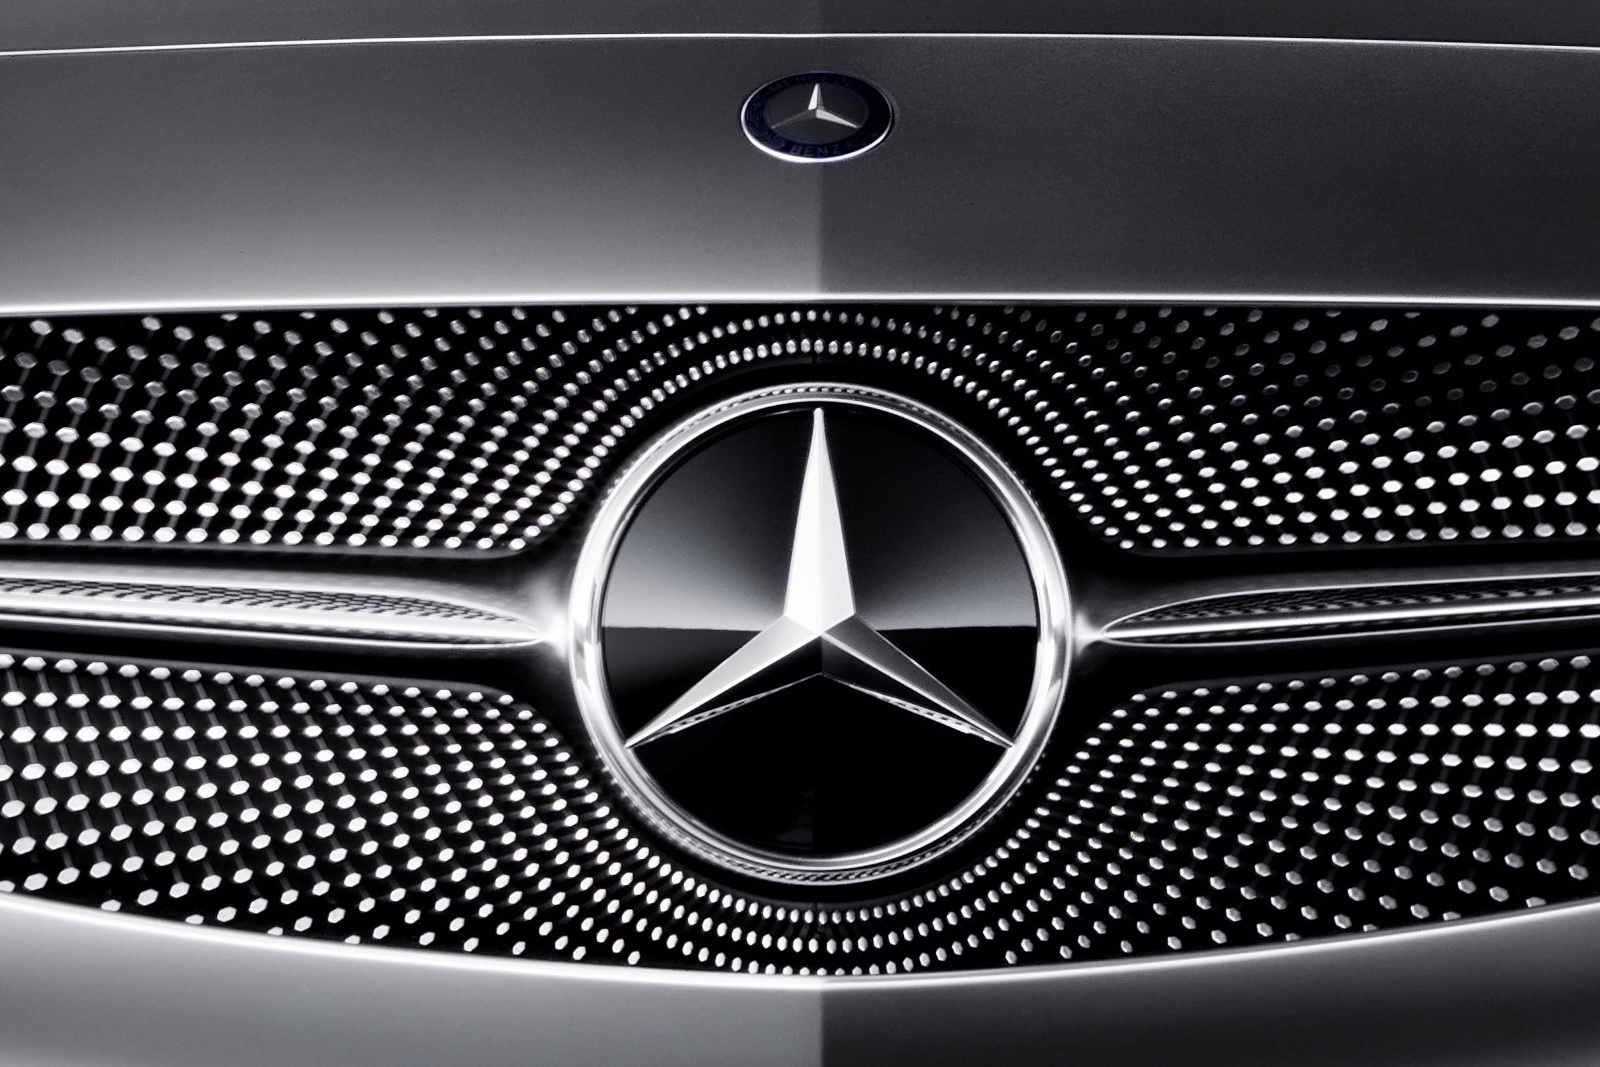 Mercedes Concept A Class 20 Mercedes Benz A Class More Dynamic and Energy Efficient